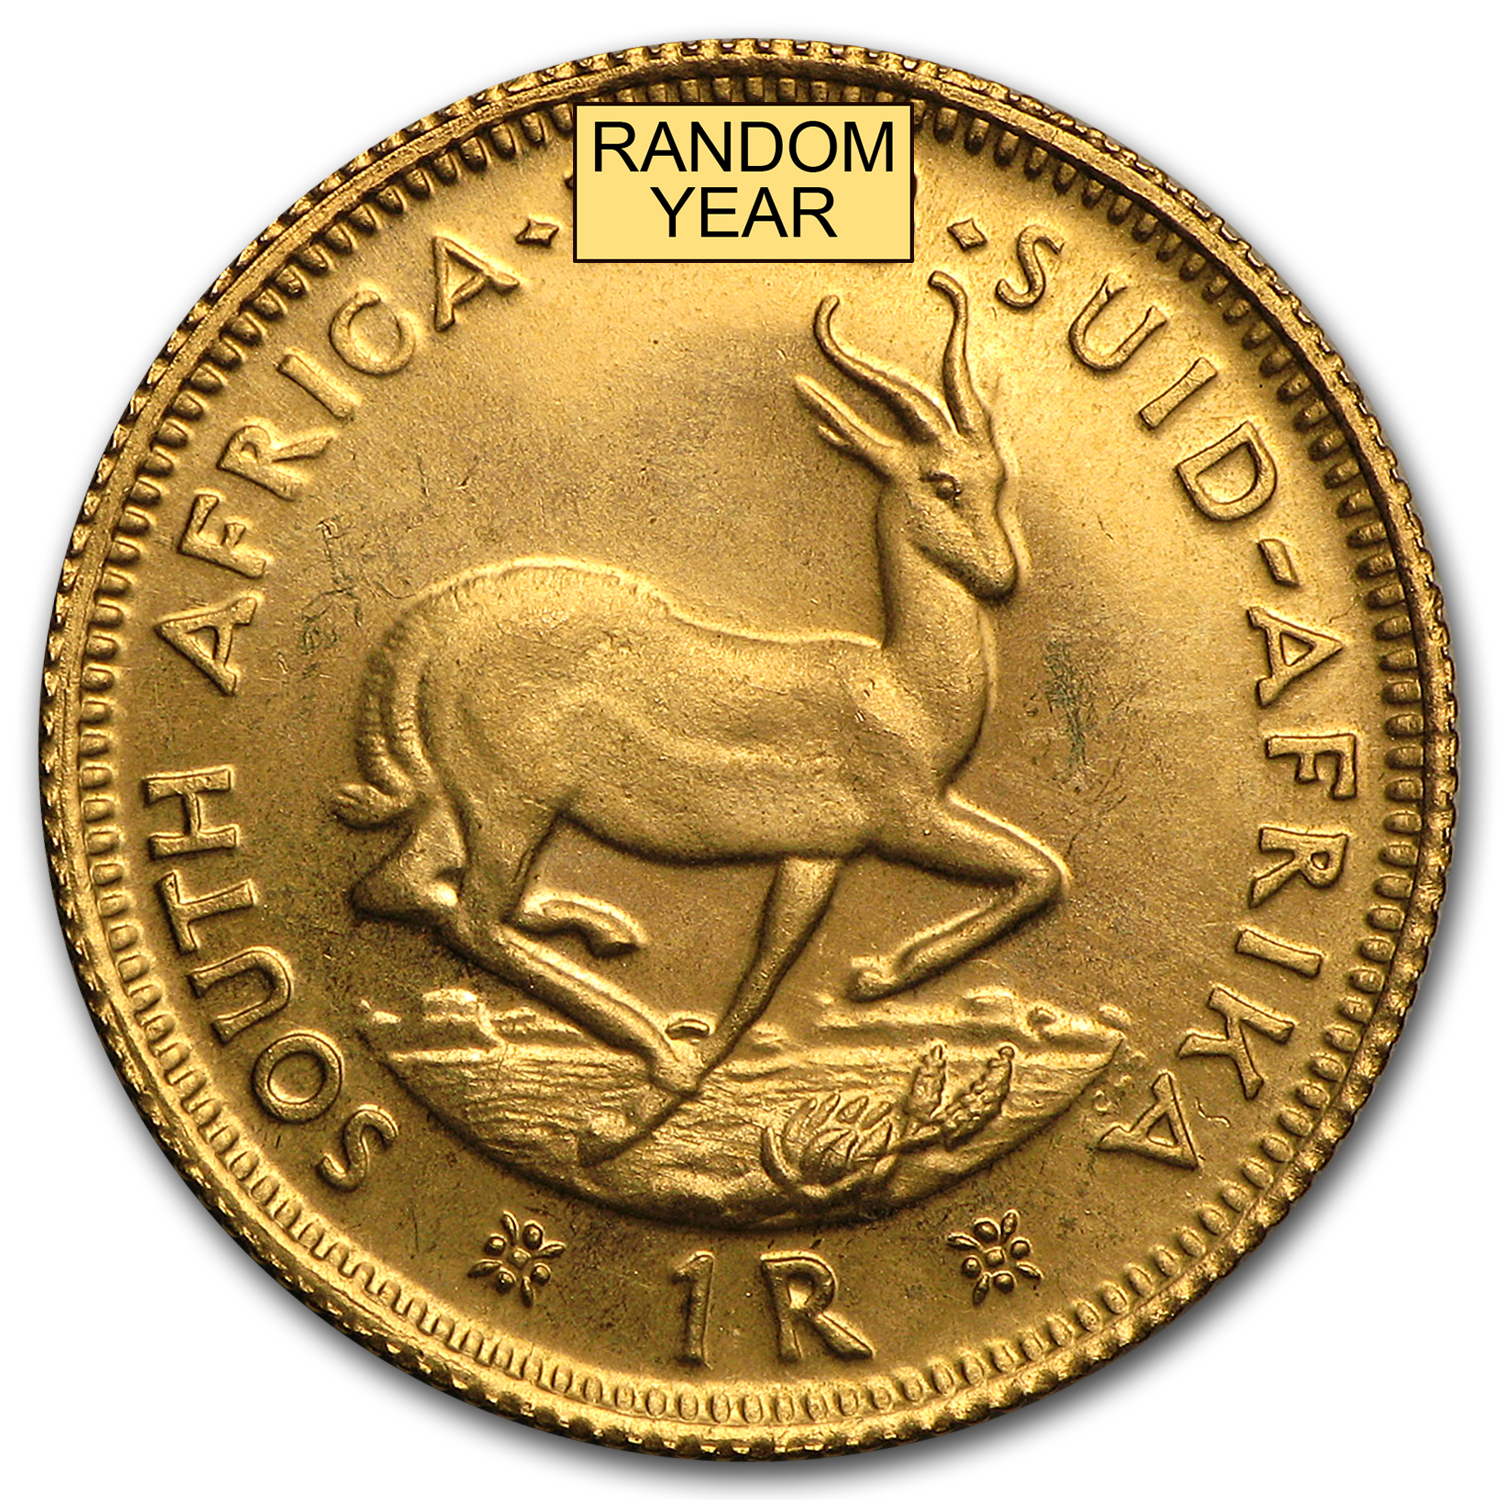 South African Gold 1 Rands (Brilliant Uncirculated)